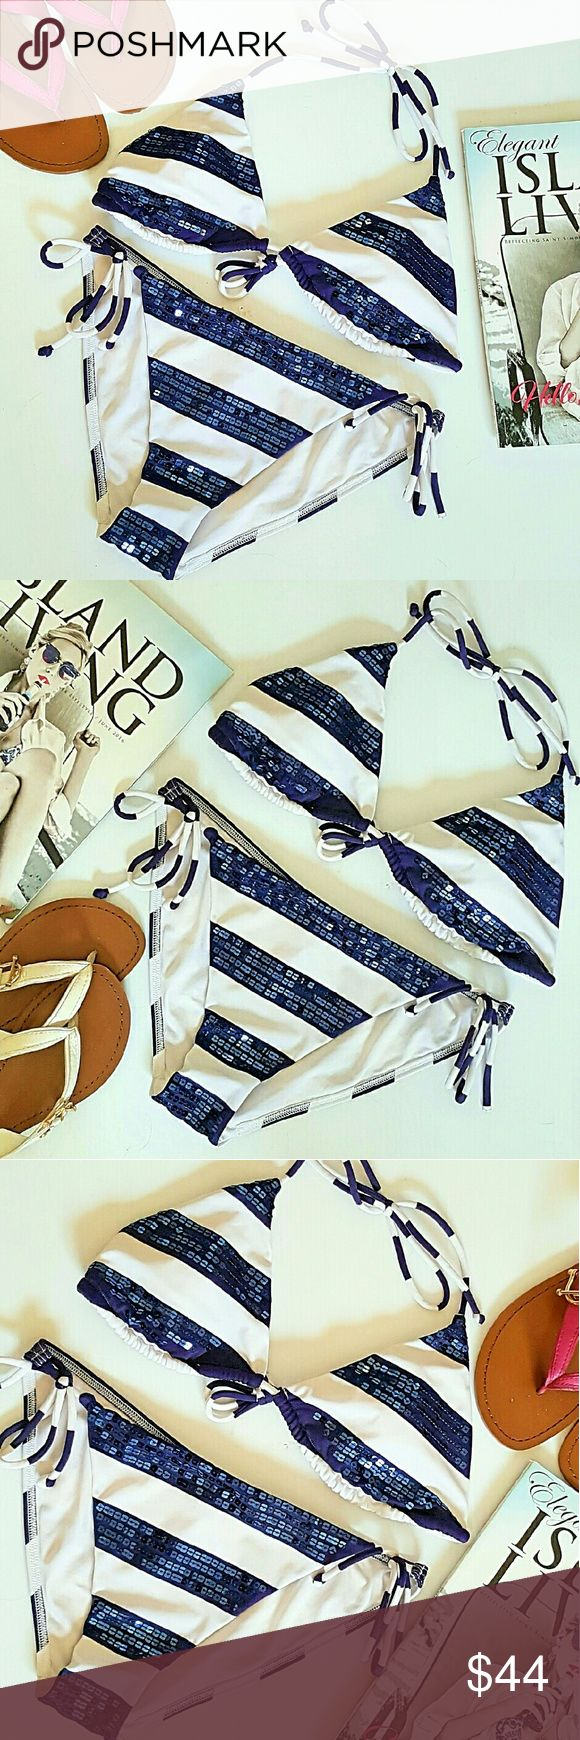 VICTORIA'S SECRET MEDIUM NAVY BLUE SEQUIN BIKINI EUC VICTORIA'S SECRET NAVY BLUE AND WHITE SEQUINED TRIANGLE STRING BIKINI. TOP AND BOTTOM ARE BOTH SIZE MEDIUM. FULL BACK COVERAGE BOTTOMS THAT TIE AT EACH HIP. REMOVABLE PADDED INSERTS ON TRIANGLE BIKINI TOP. TIES AROUND NECK AND TIES IN THE MIDDLE OF BACK. DISCOUNTED BUNDLES AND FREE GIFT WITH EVERY PURCHASE! Victoria's Secret Swim Bikinis